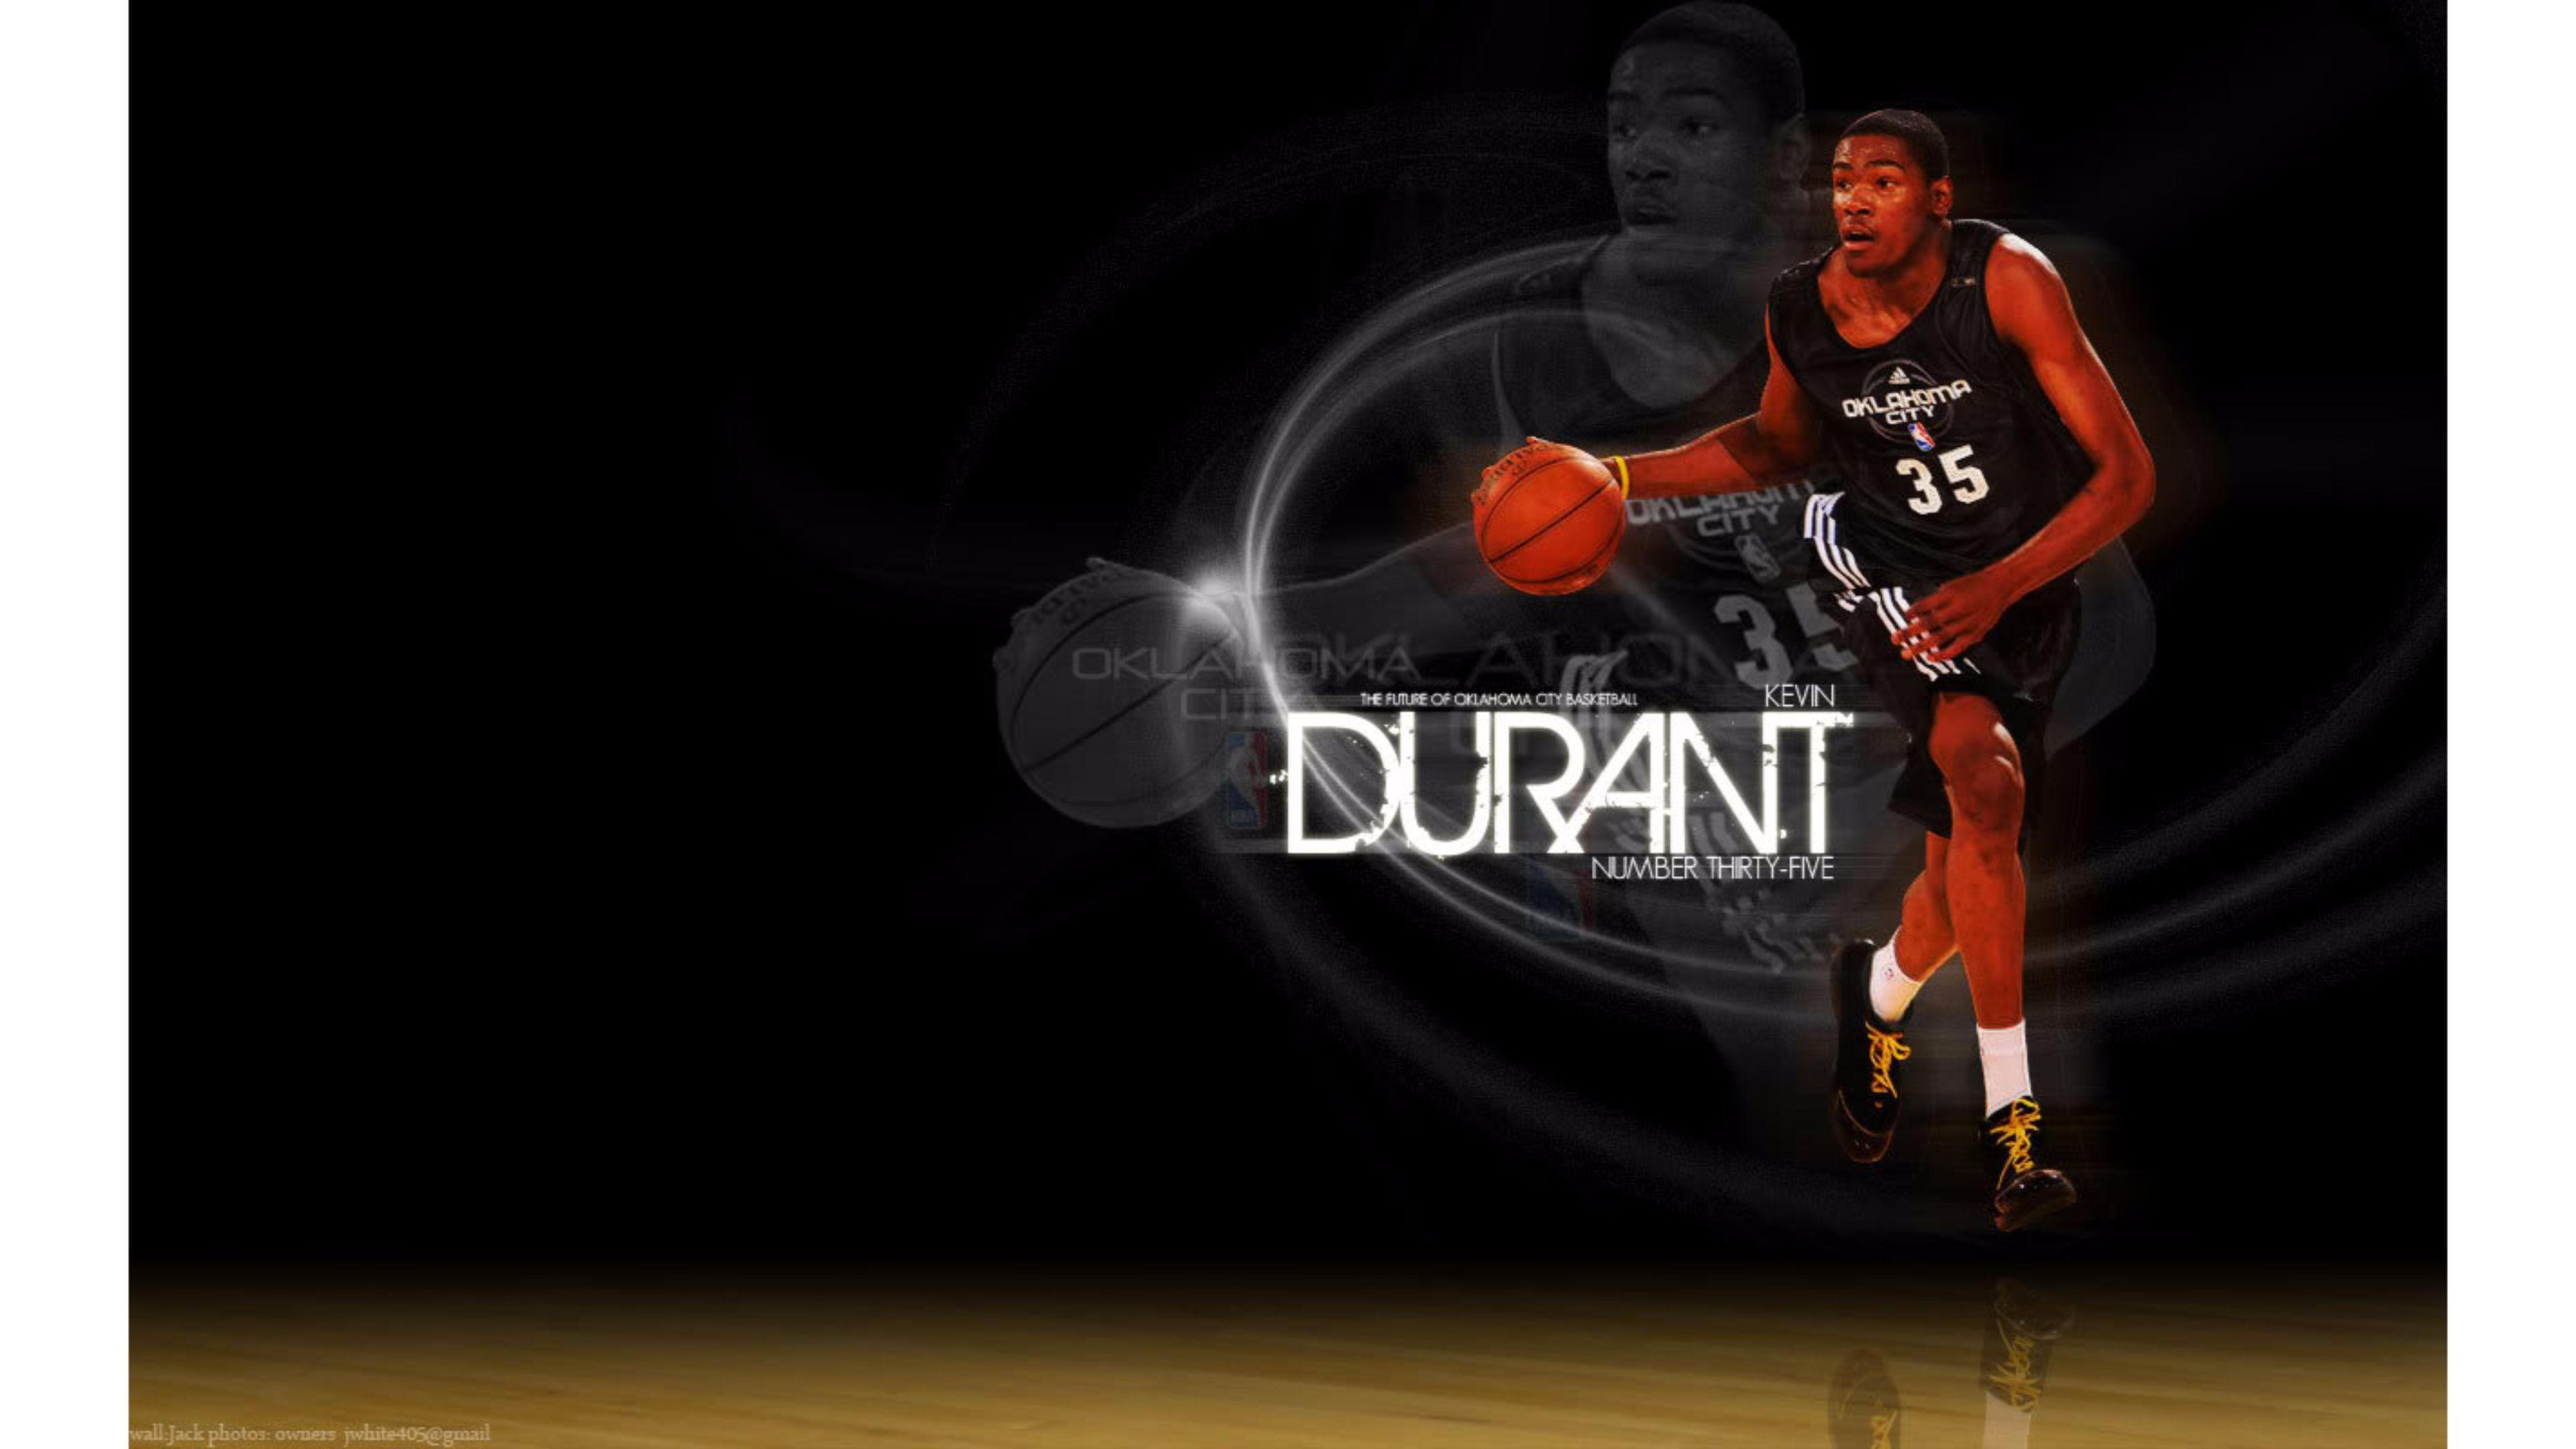 Res: 3840x2160, Black Background Kevin Durant 4K Wallpapers